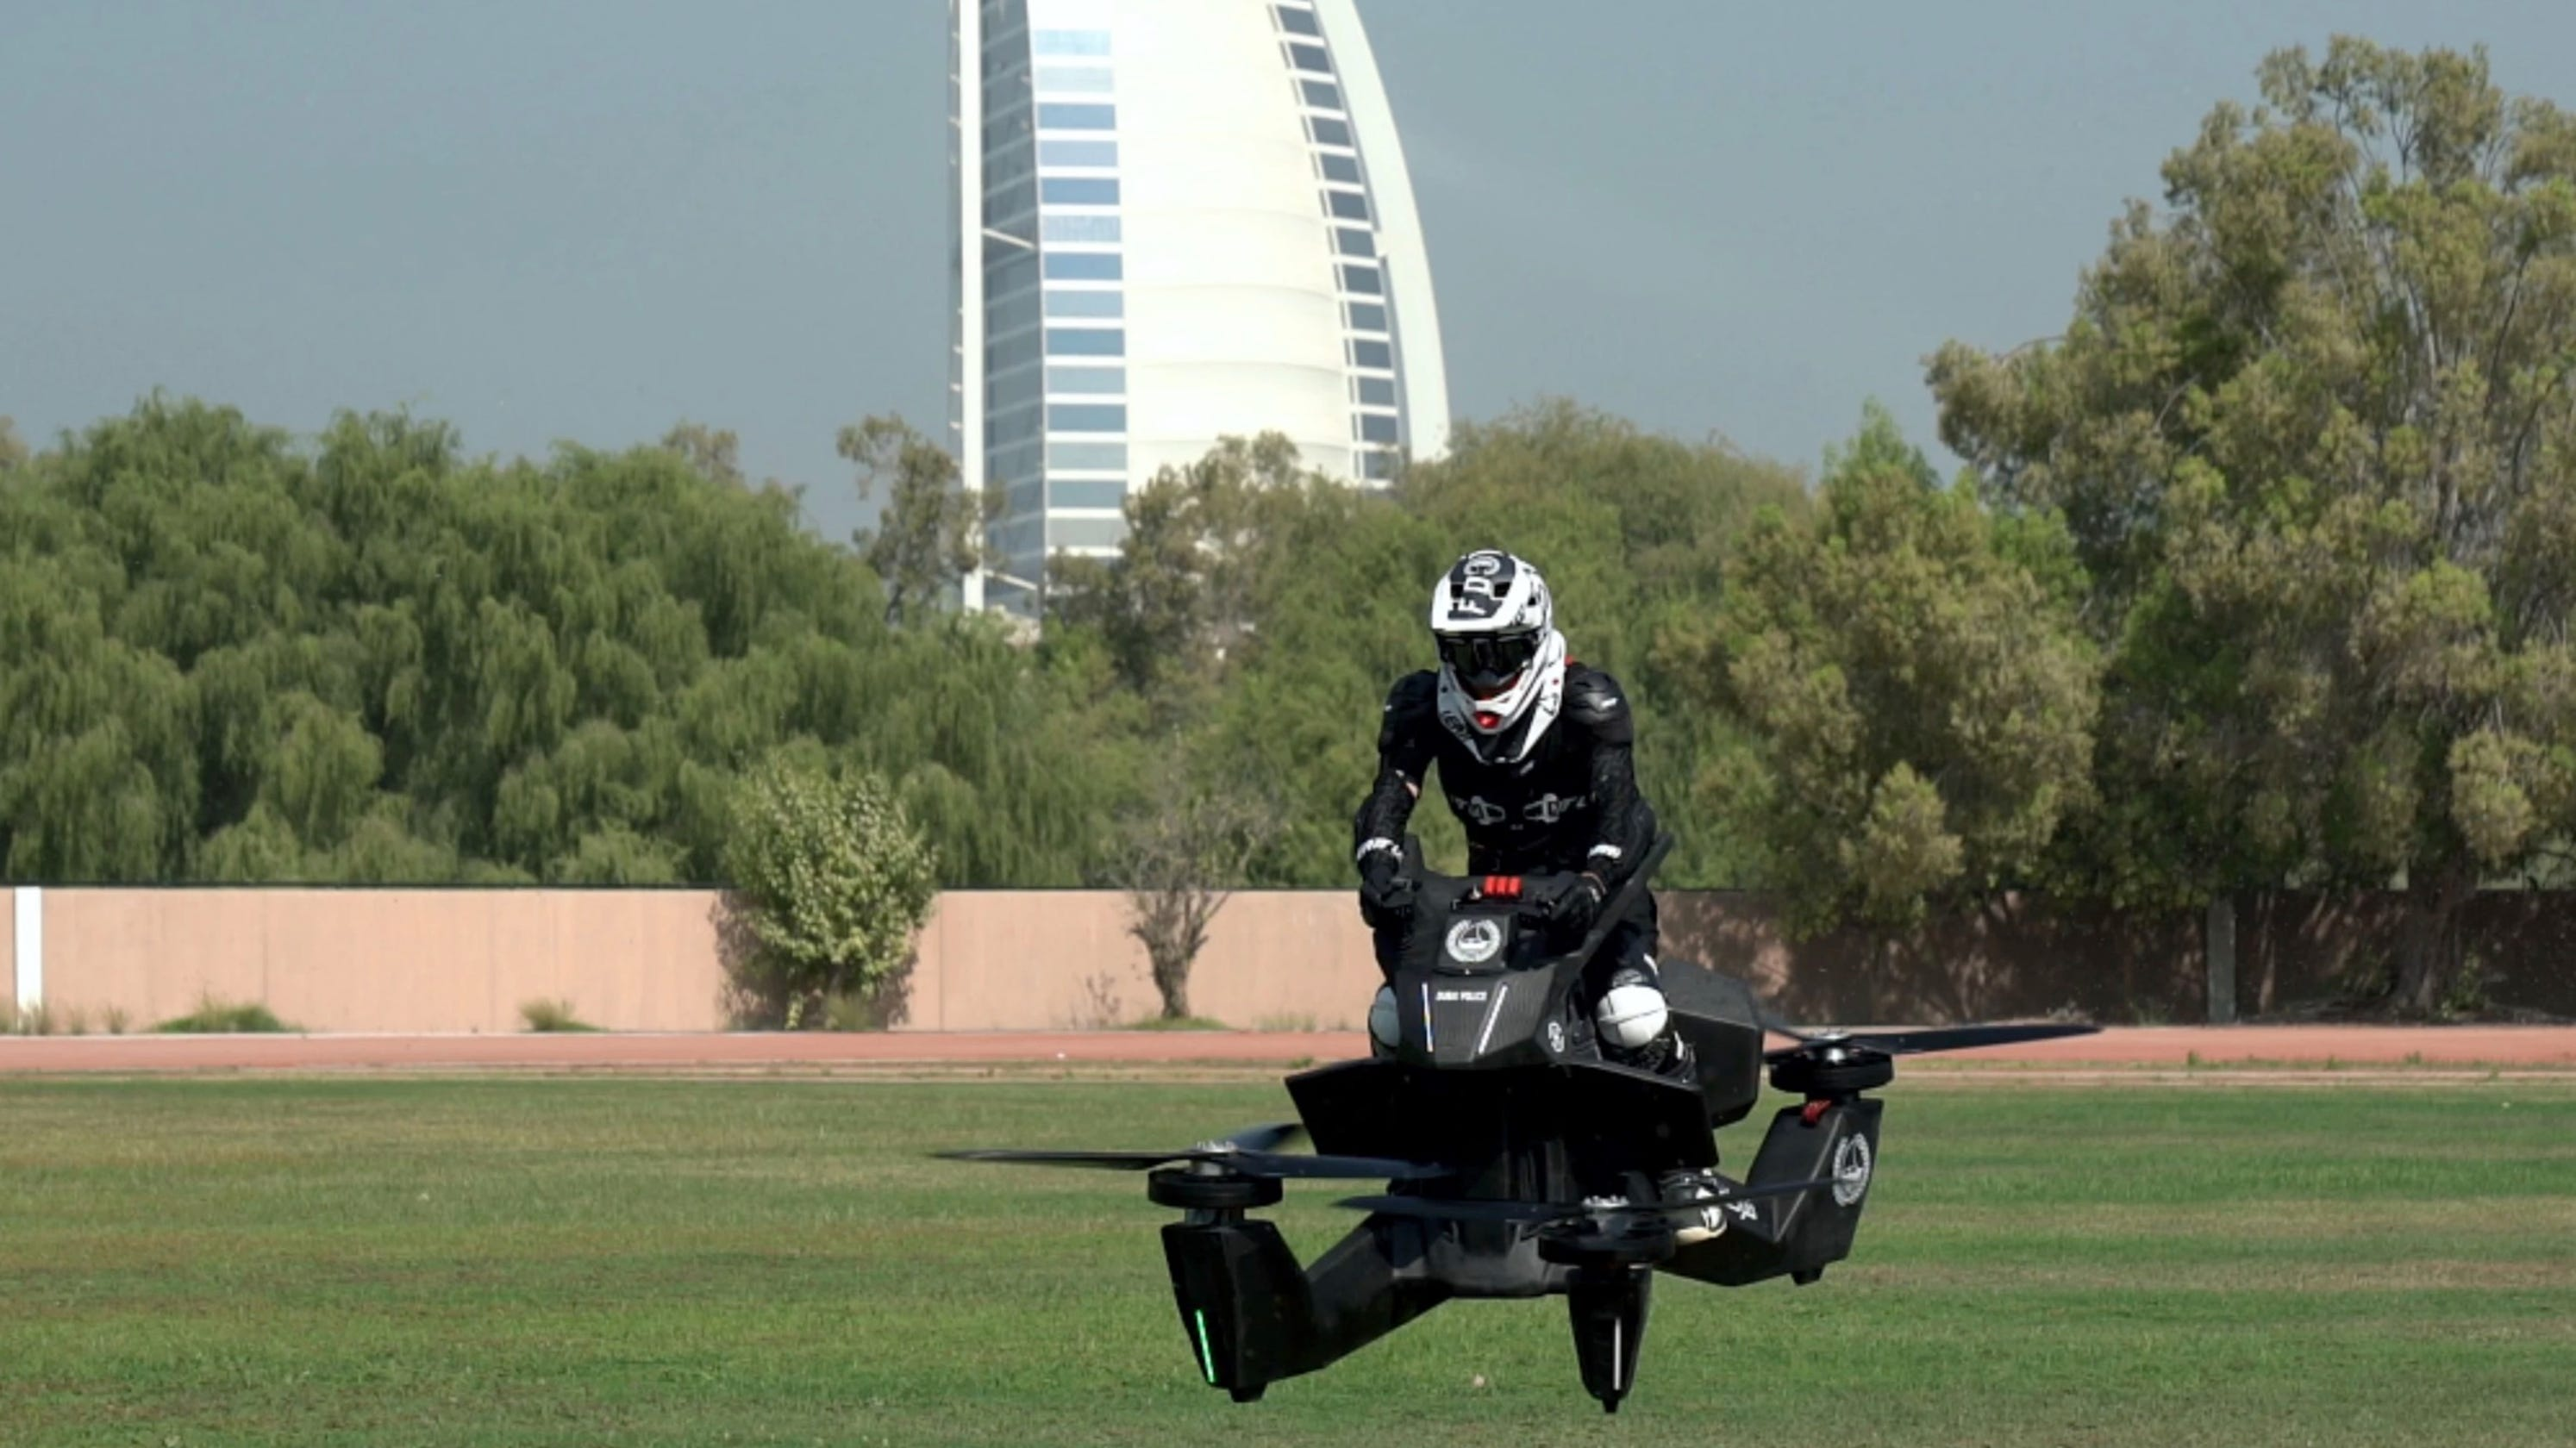 Hoverbikes Tested By Dubai Police For Deployment